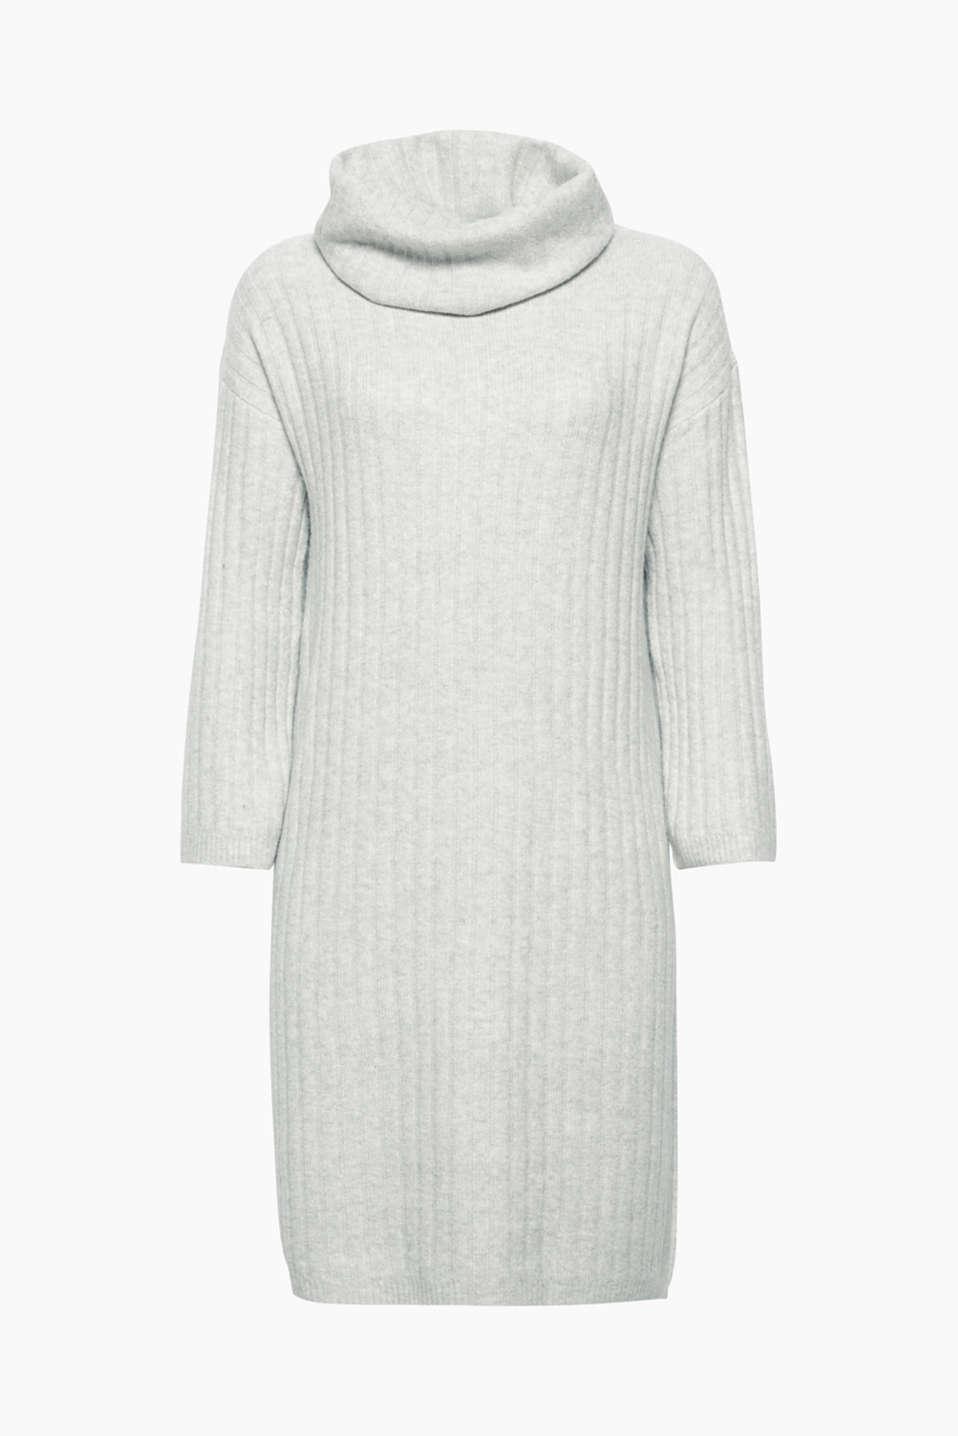 This super cool dress with a polo neck collar and 3/4 sleeves is made of sportily ribbed, melange yarn!